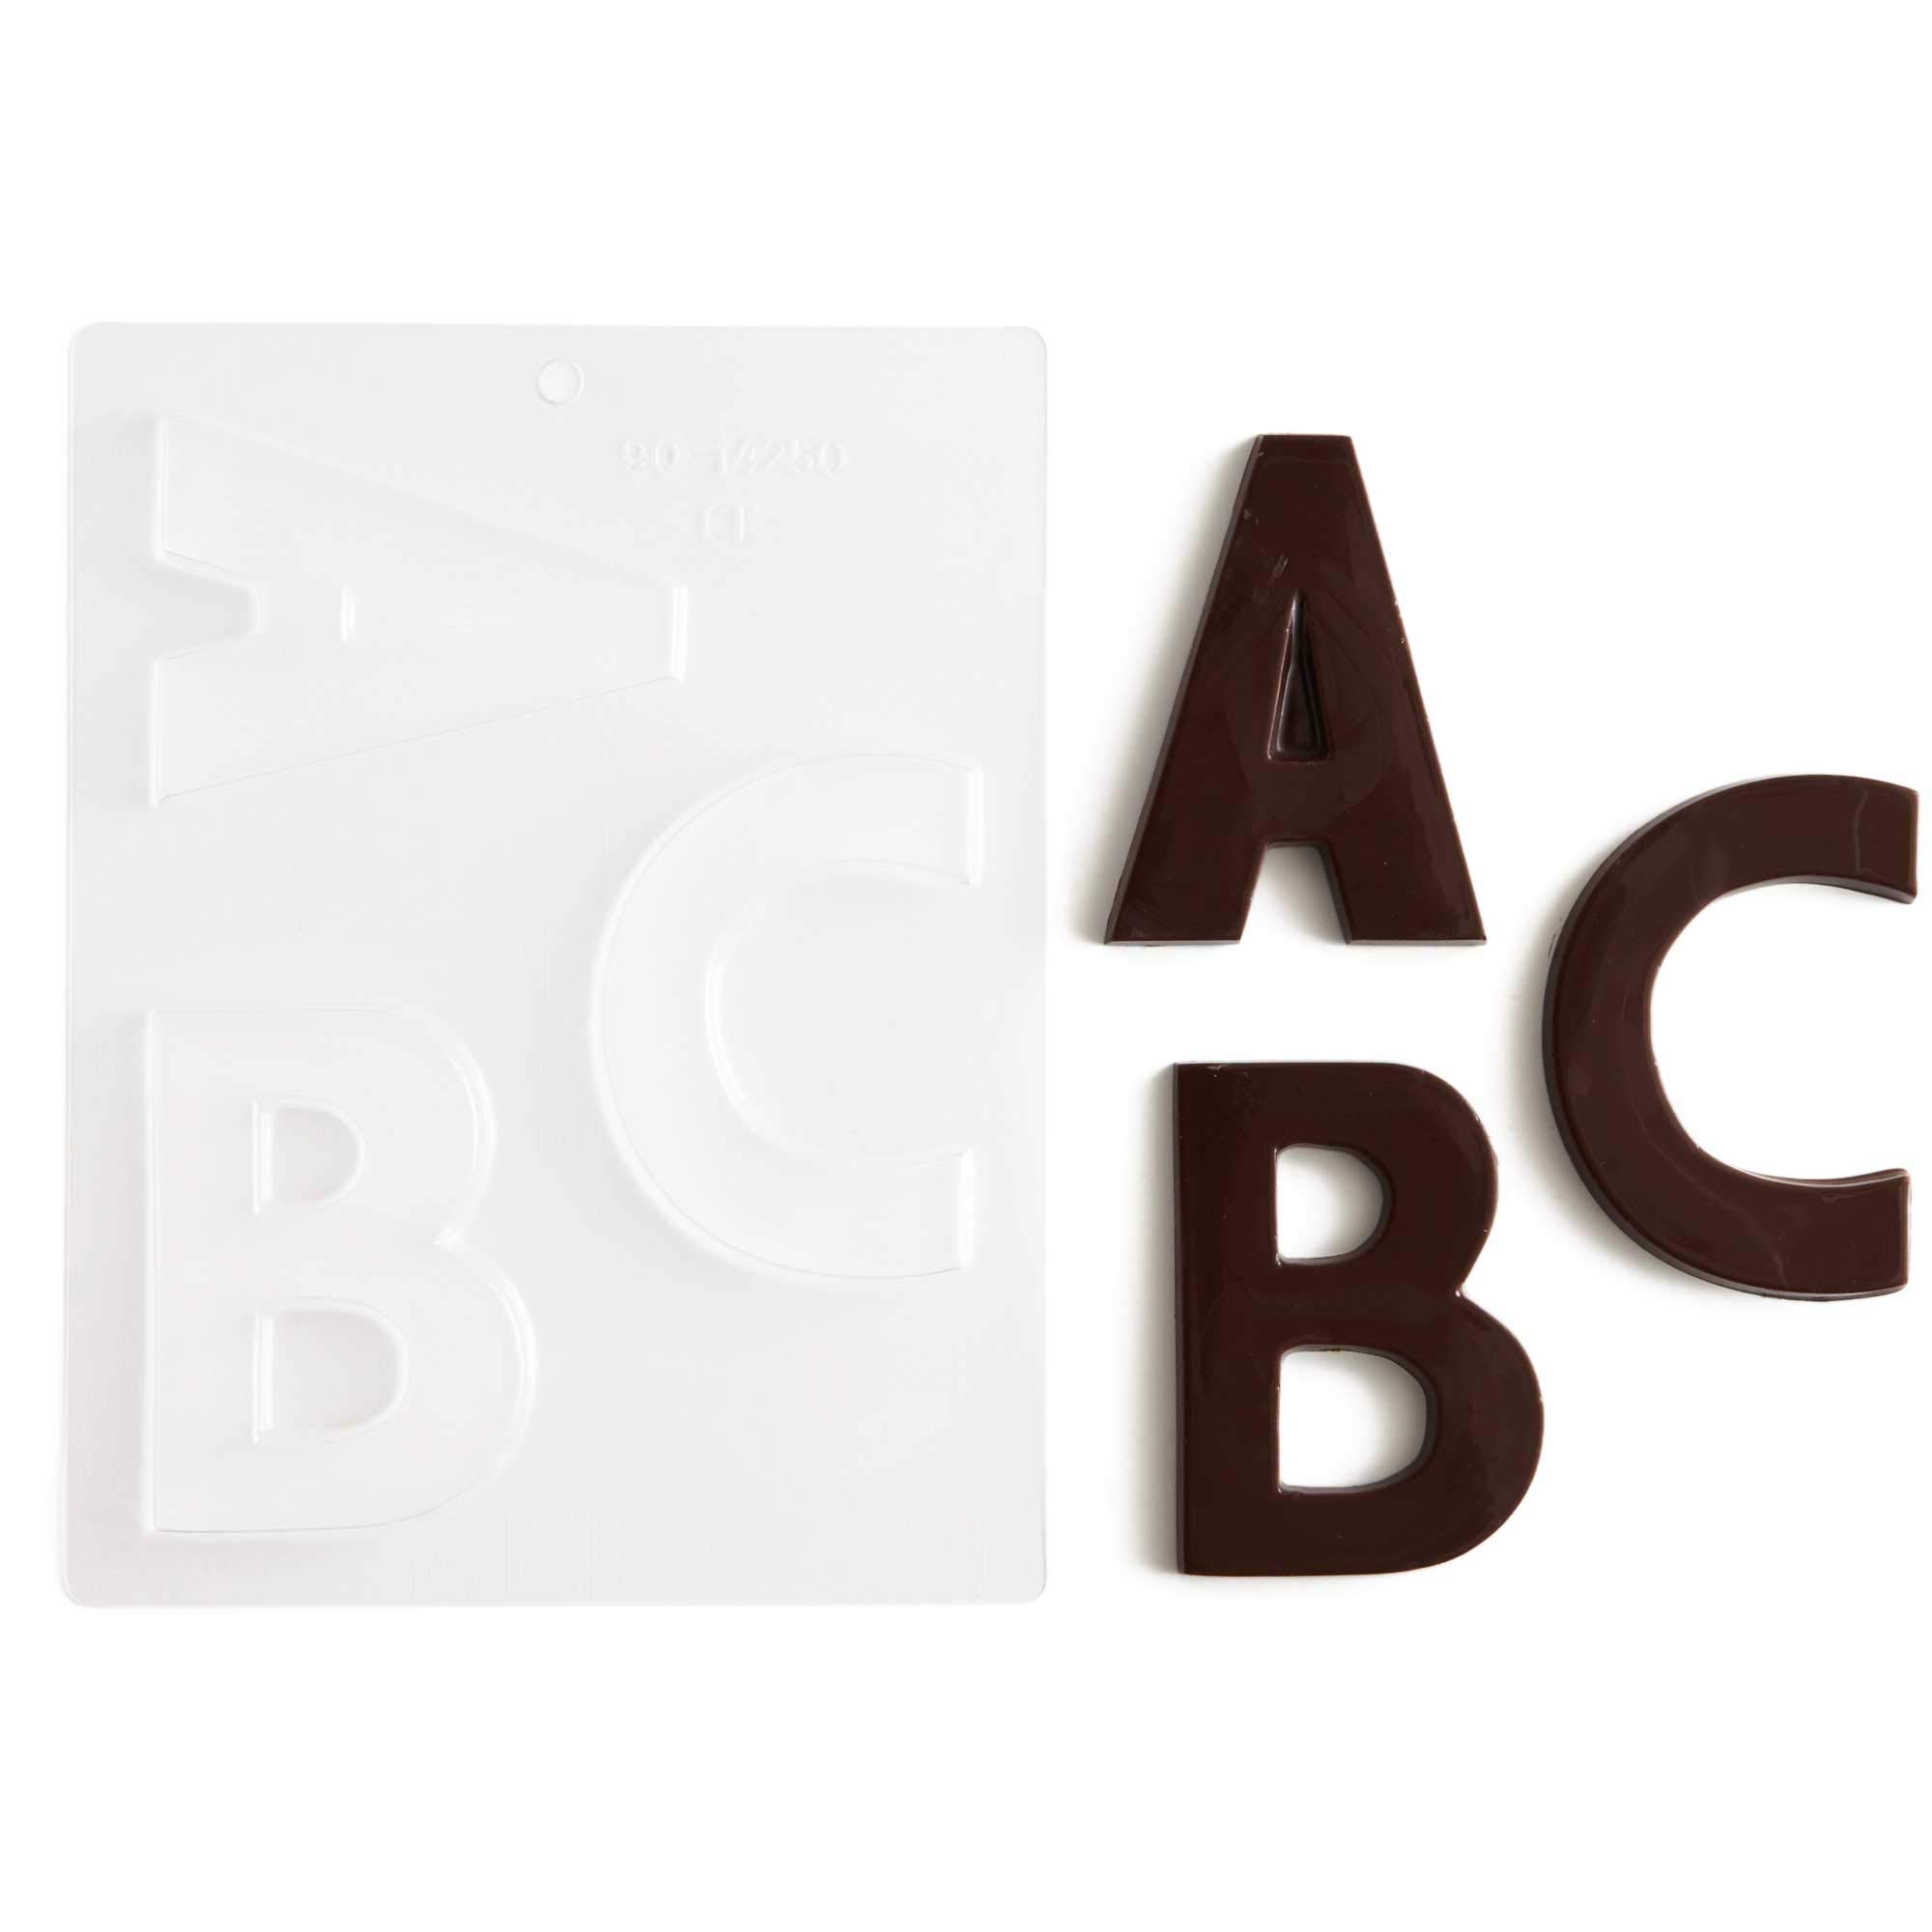 Large Block Letters Chocolate Candy Molds - A - Z (8) 4'' Letter Alphabet Set (Cakegirls Chocolate Mold Instructions Included) by Cakegirls (Image #1)